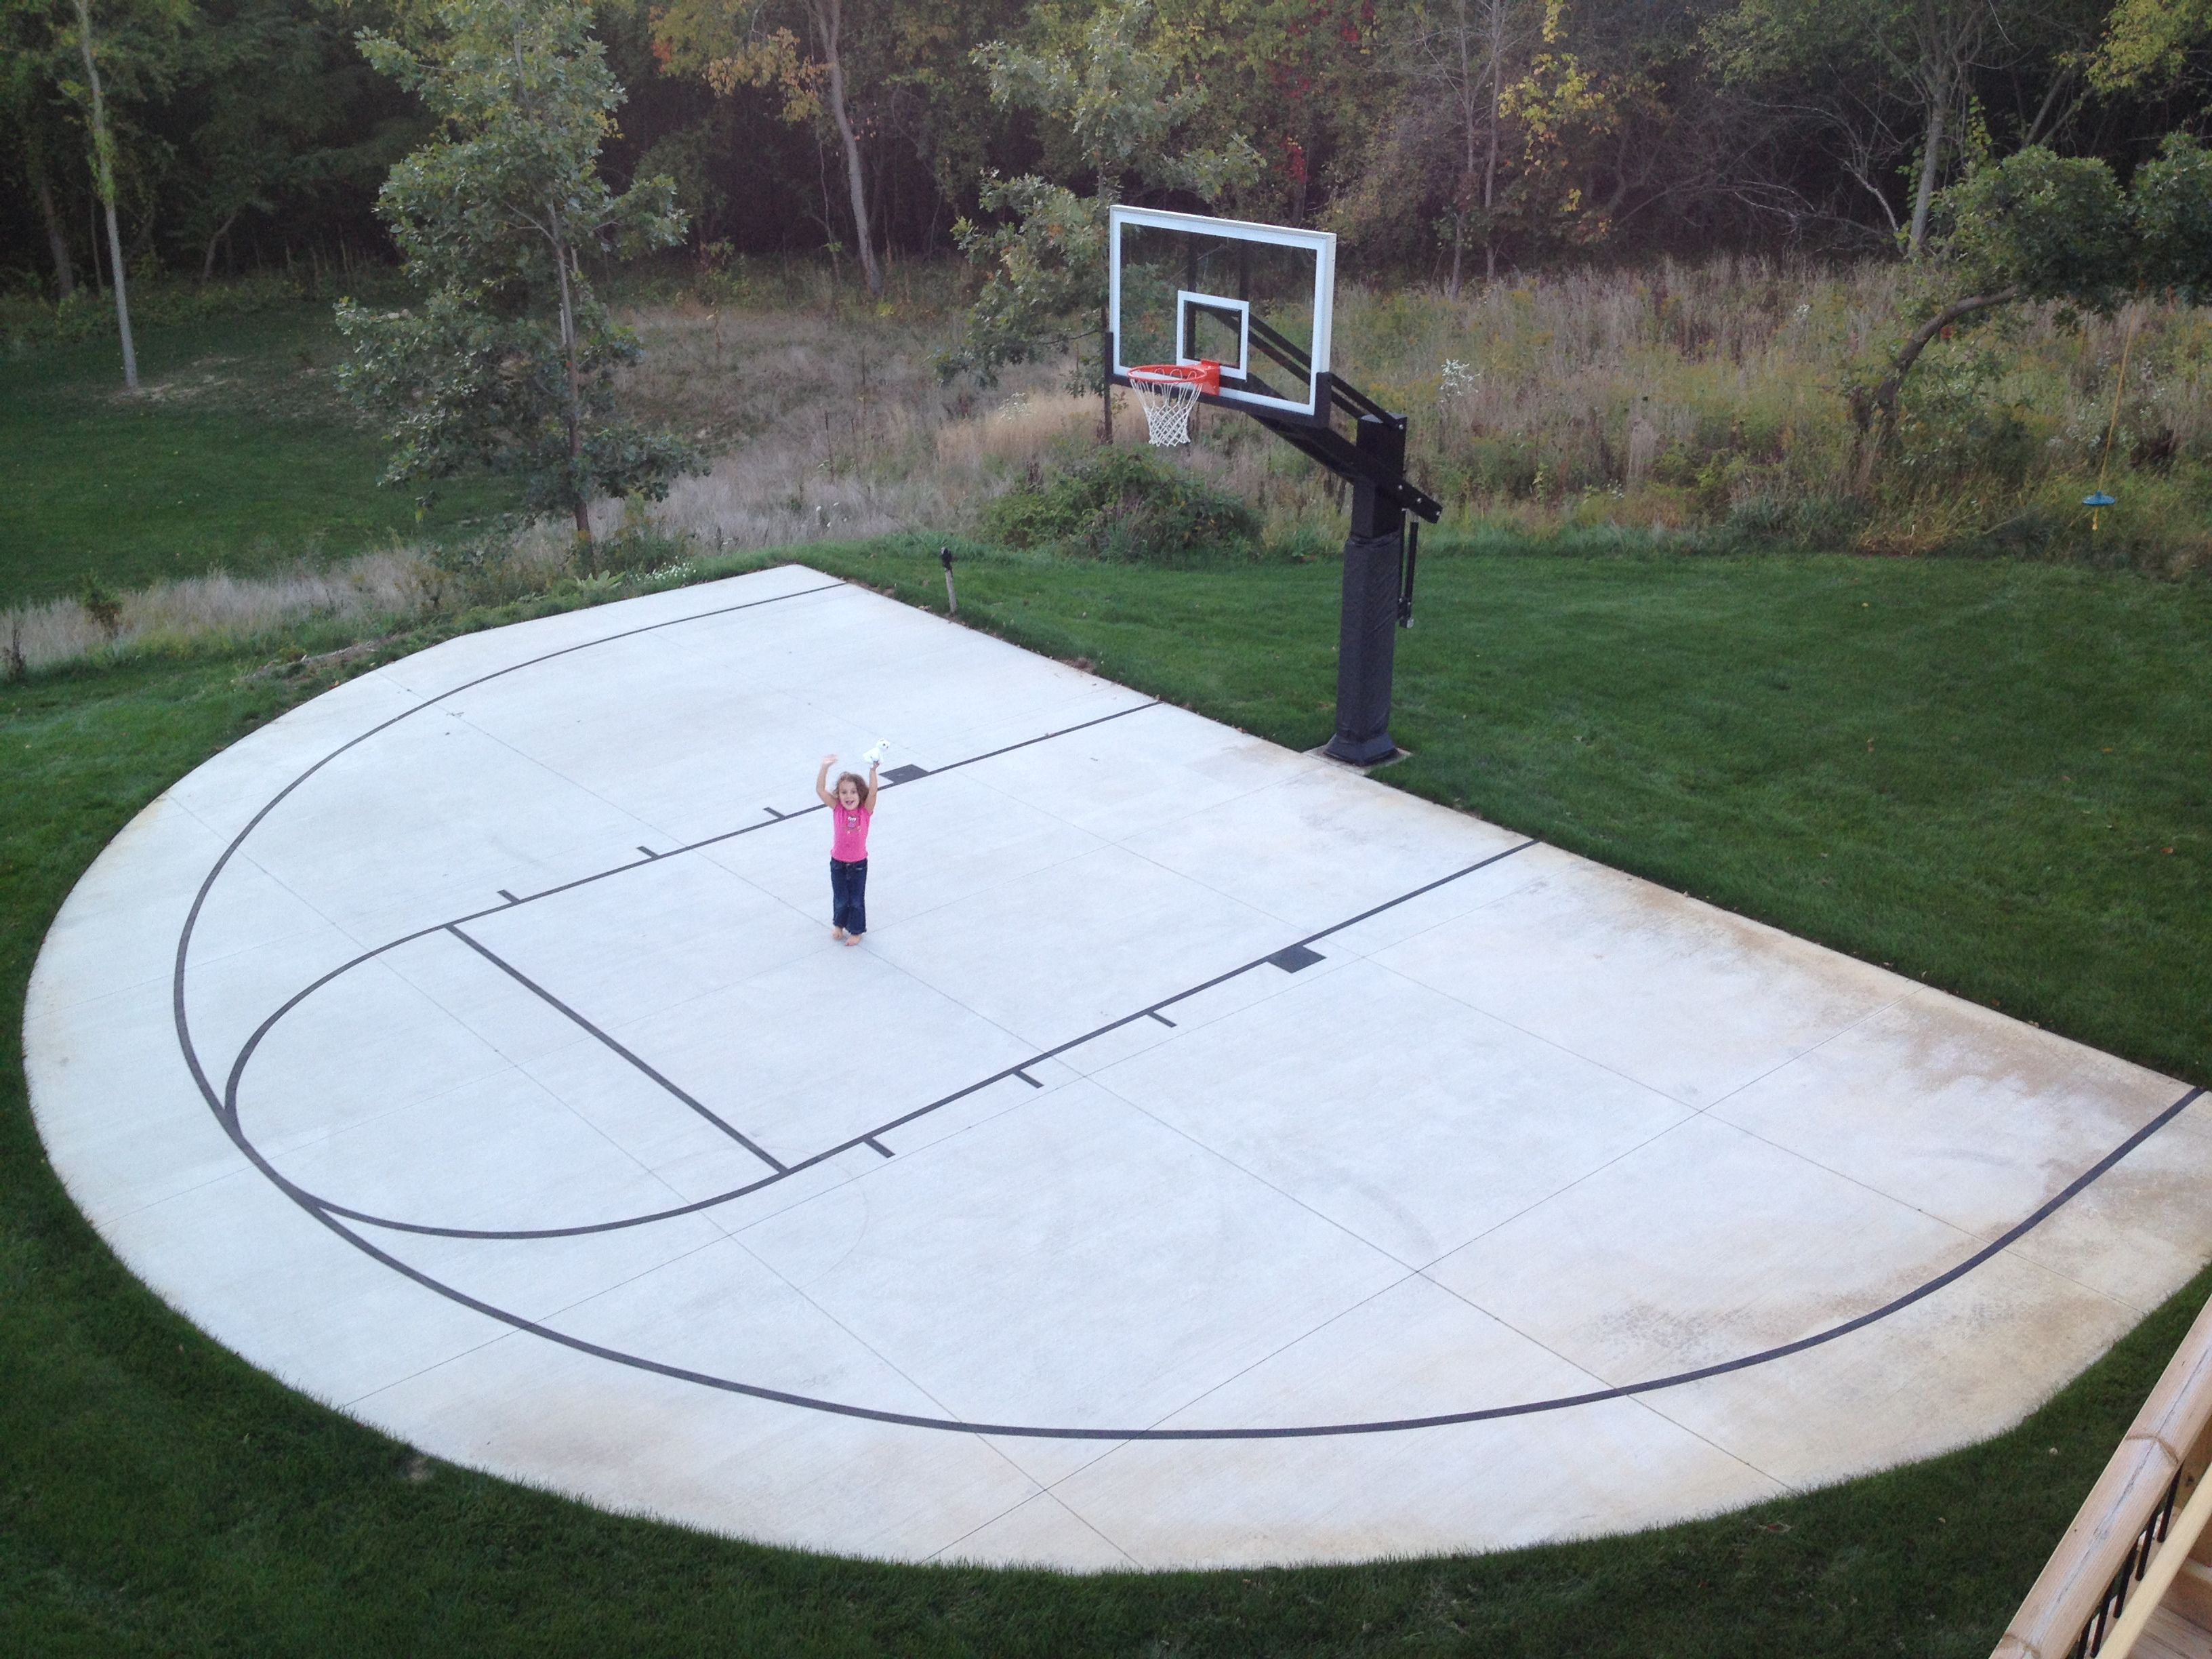 A Backyard Half Court With Striping Is Can Be An Inspiring Early